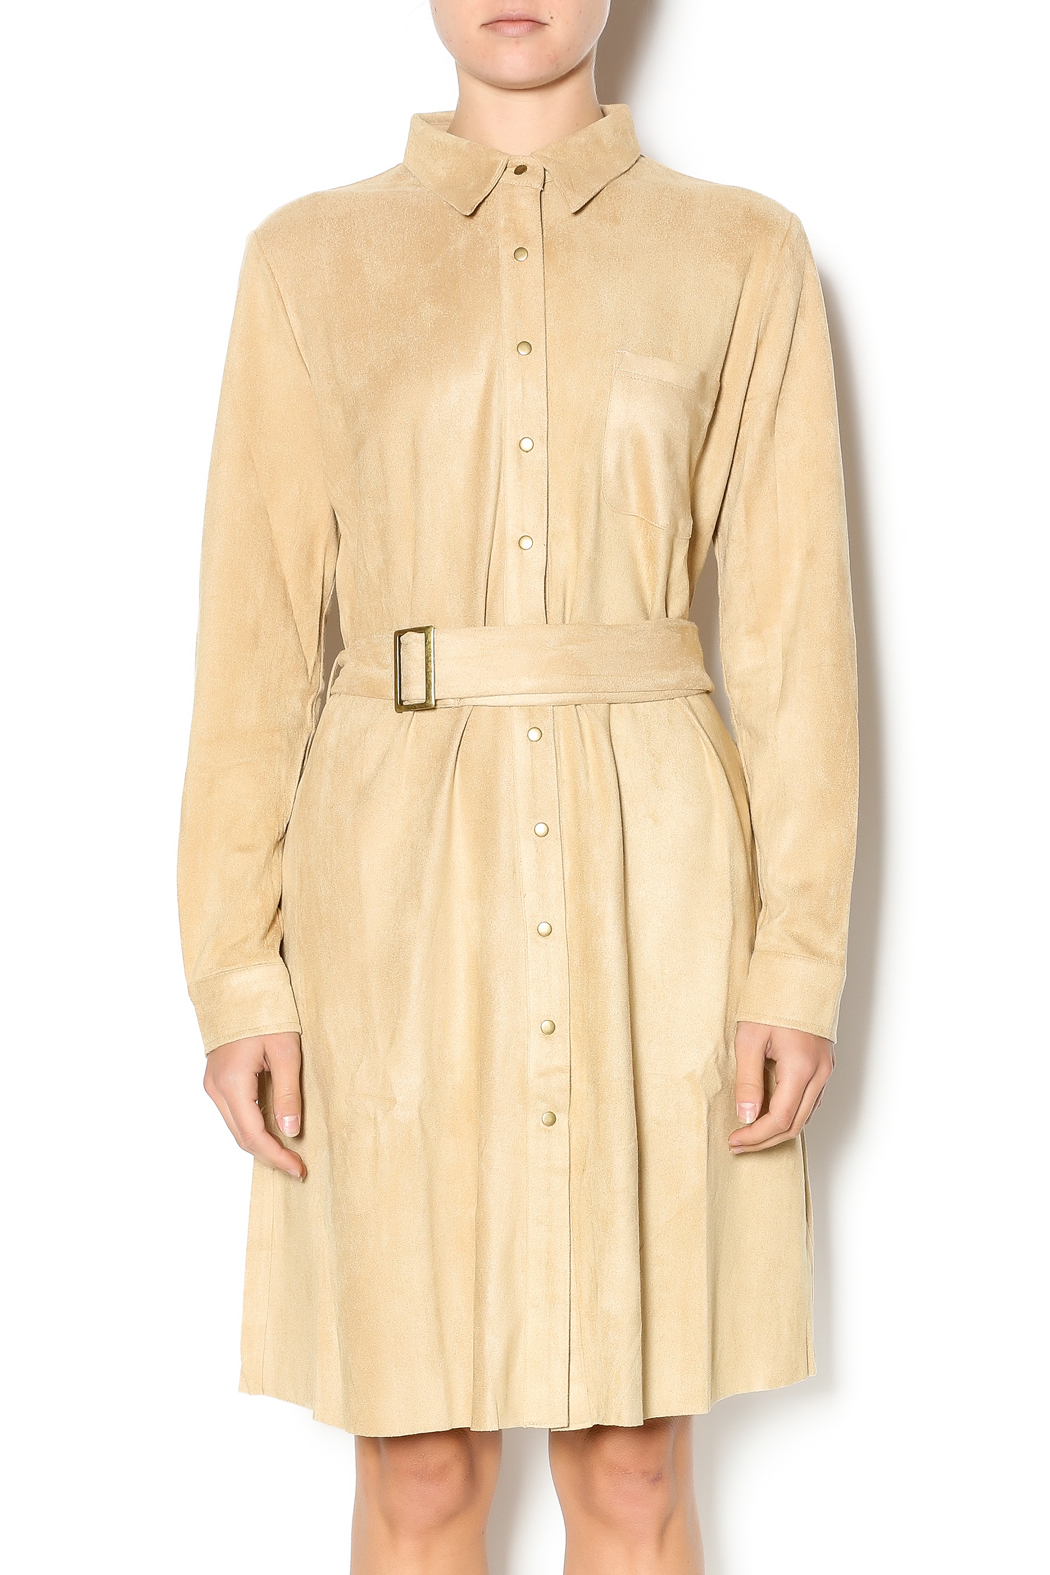 Joh Apparel Faux Suede Shirtdress - Back Cropped Image